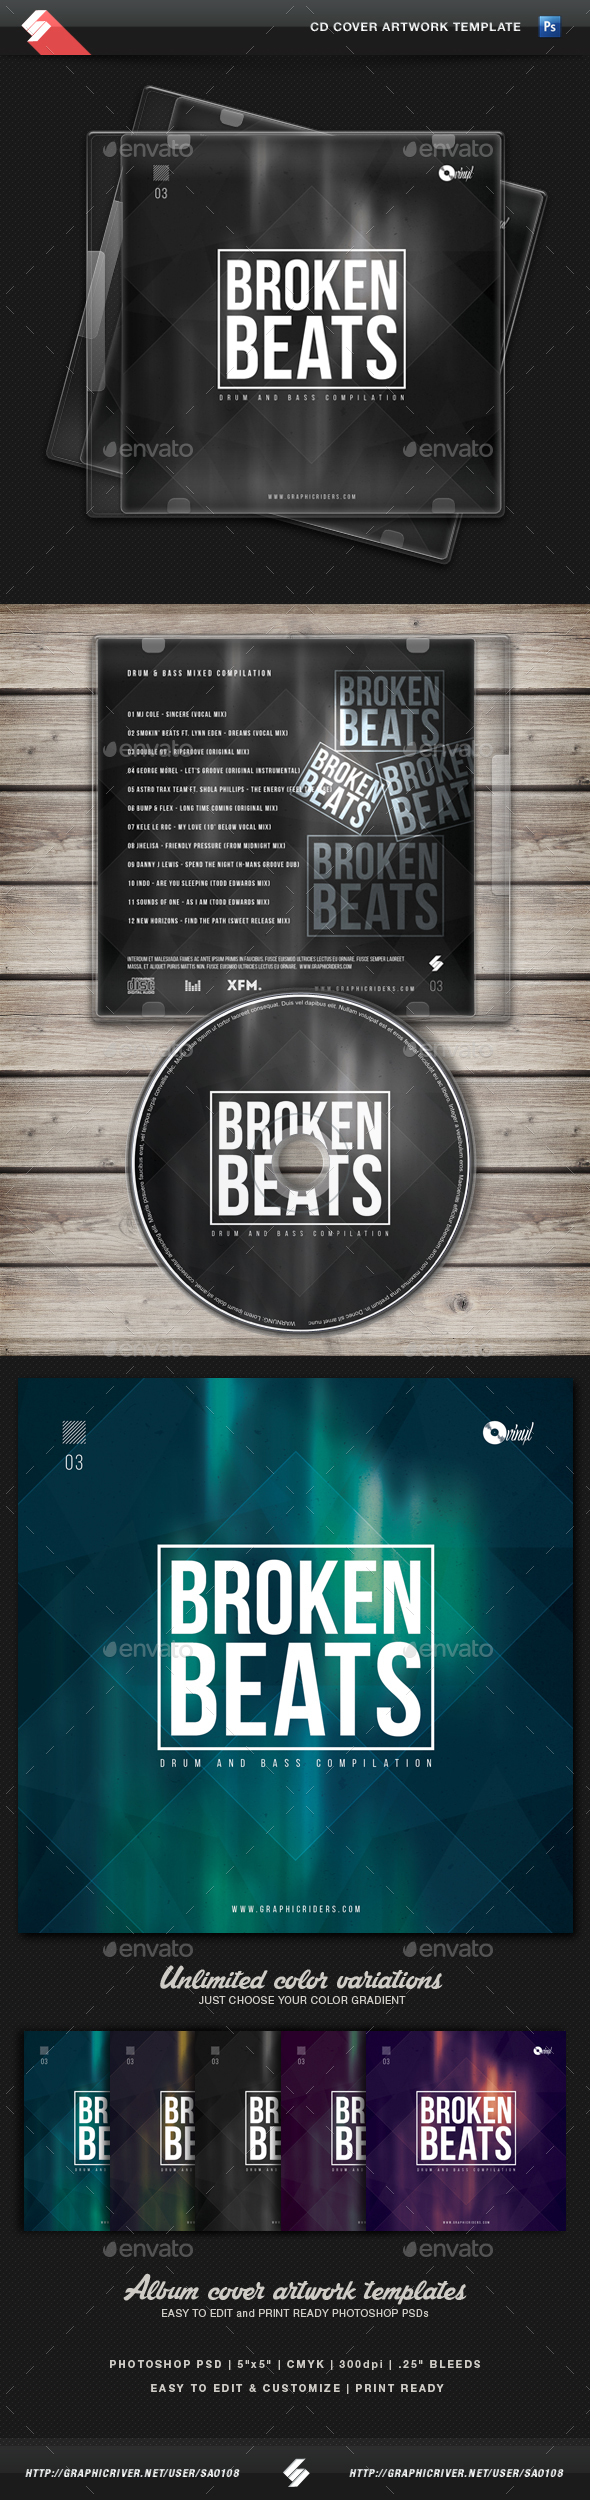 Broken Beats vol3 - CD Cover Artwork Template - CD & DVD Artwork Print Templates